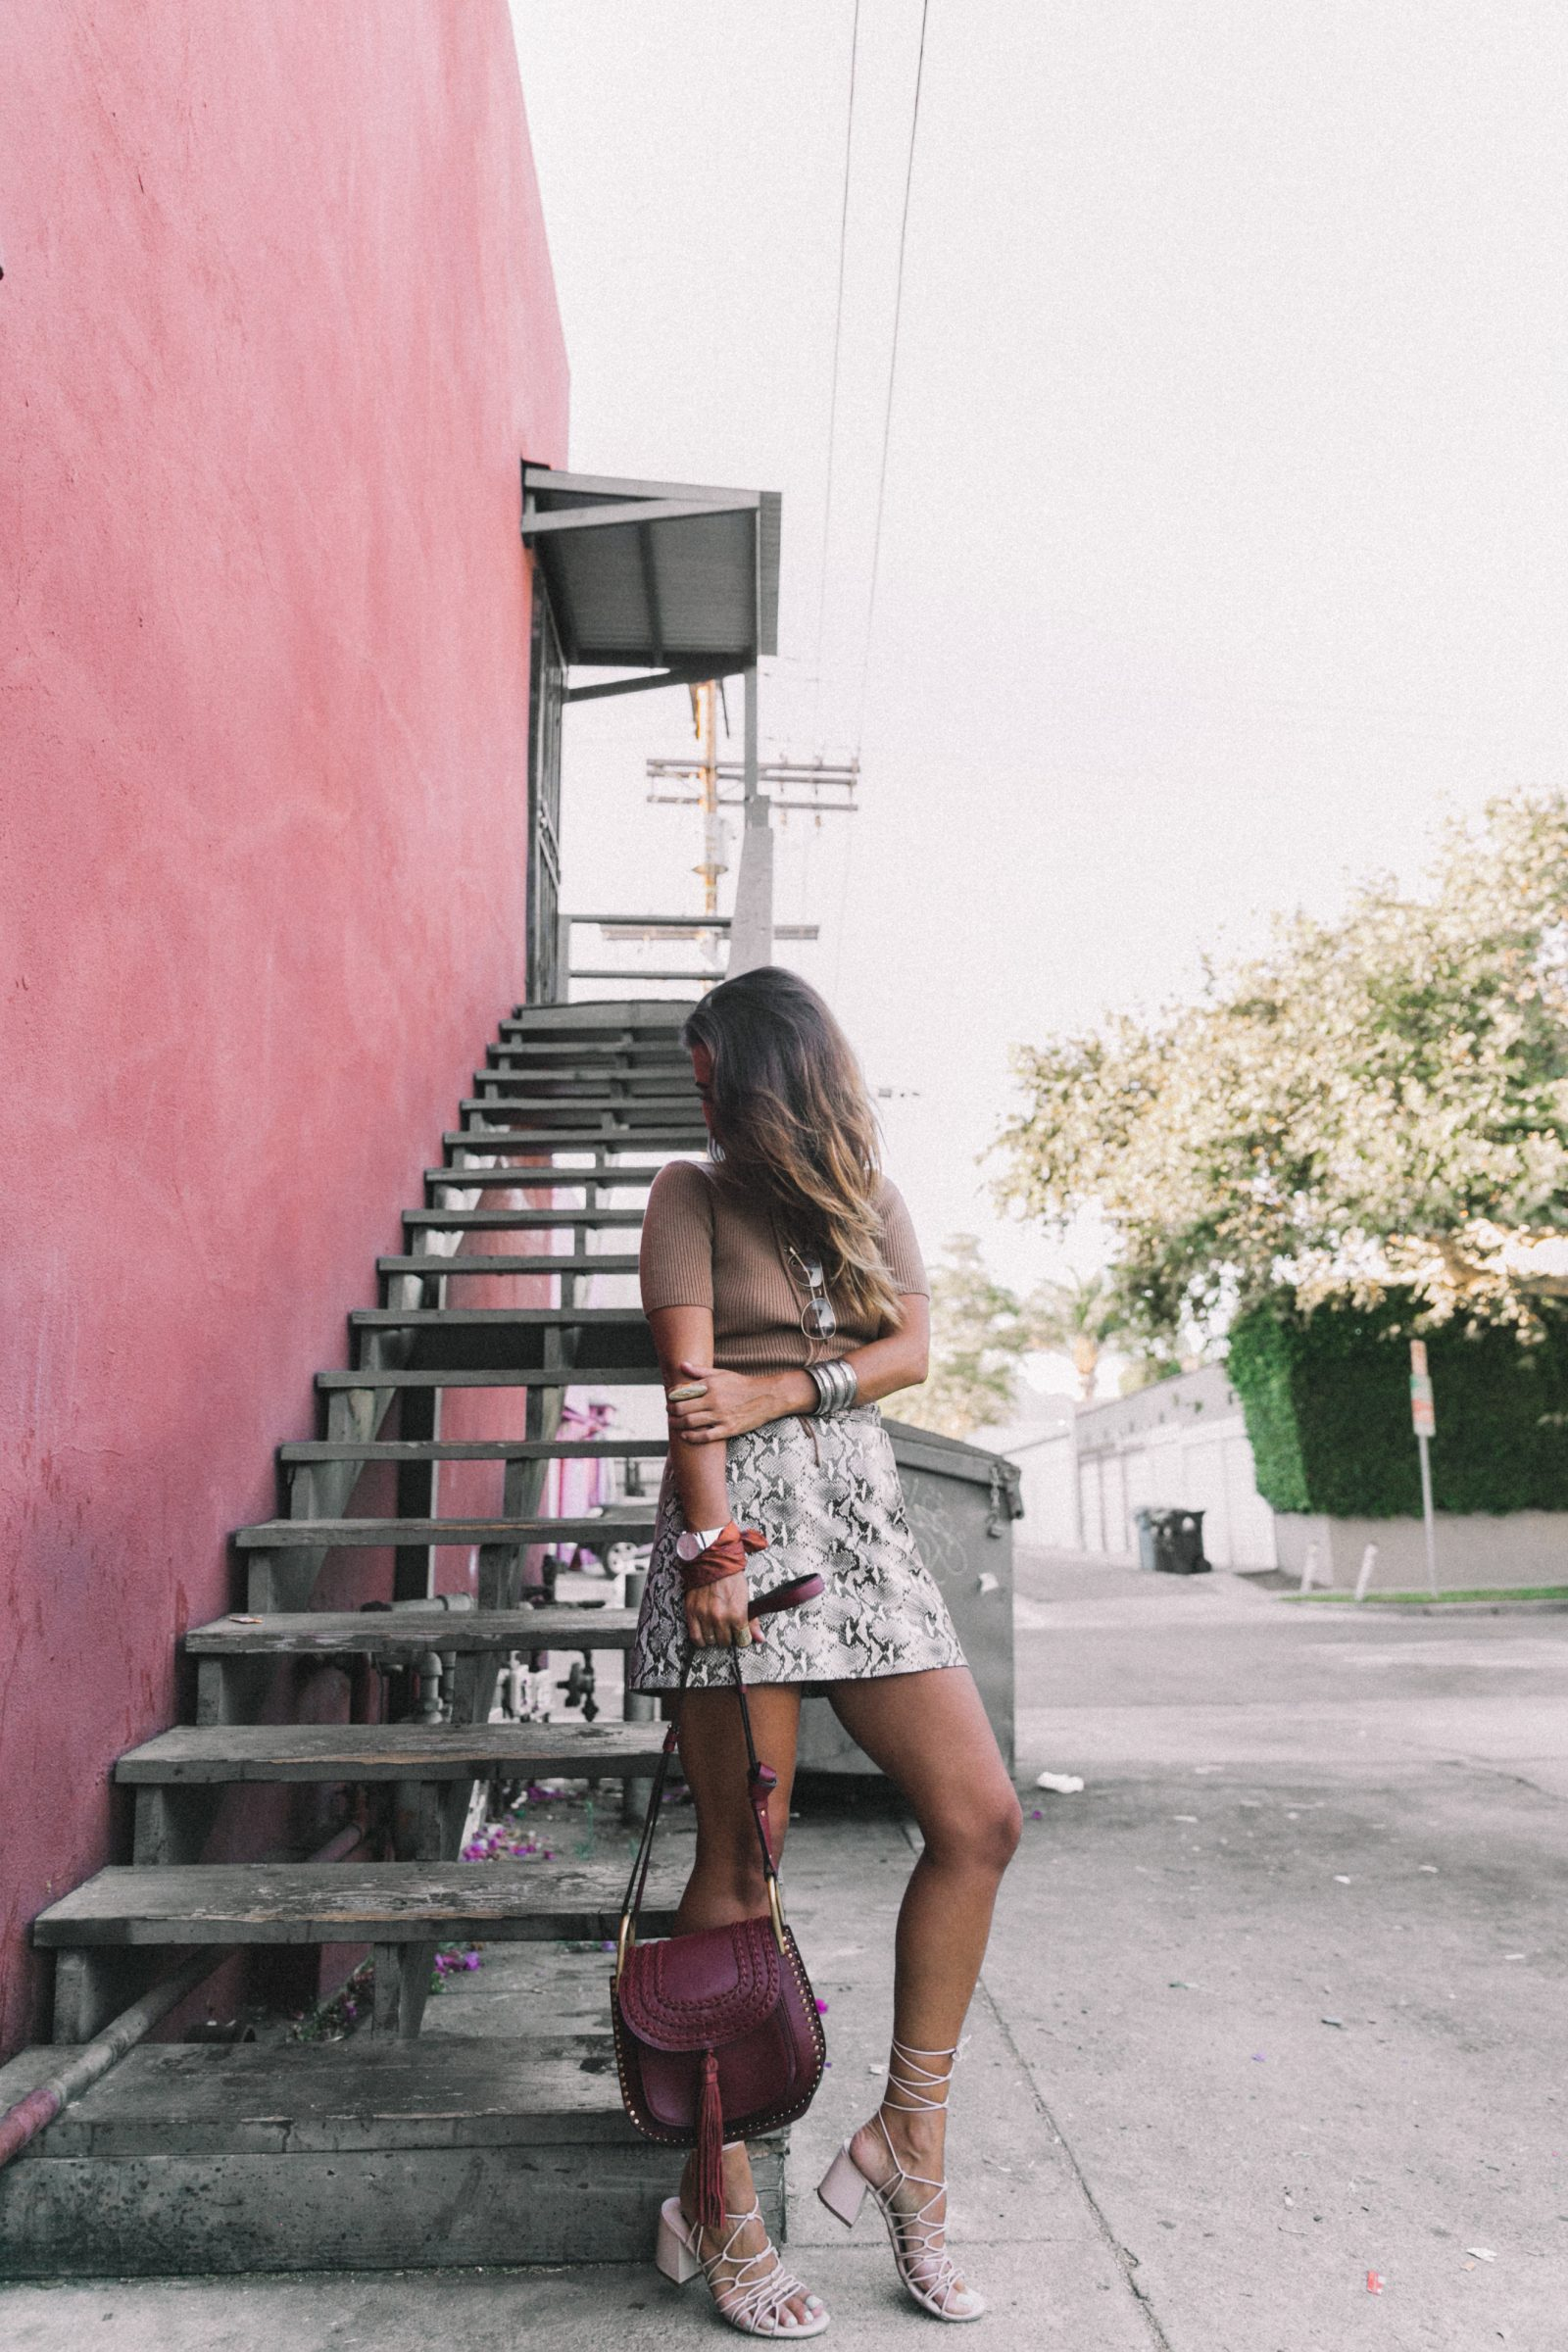 lpa_the_label-revolve_clothing-snake_skirt-lace_up_sweater-knotted_sandals-chloe_hudson_bag-outfit-street_style-los_angeles-59